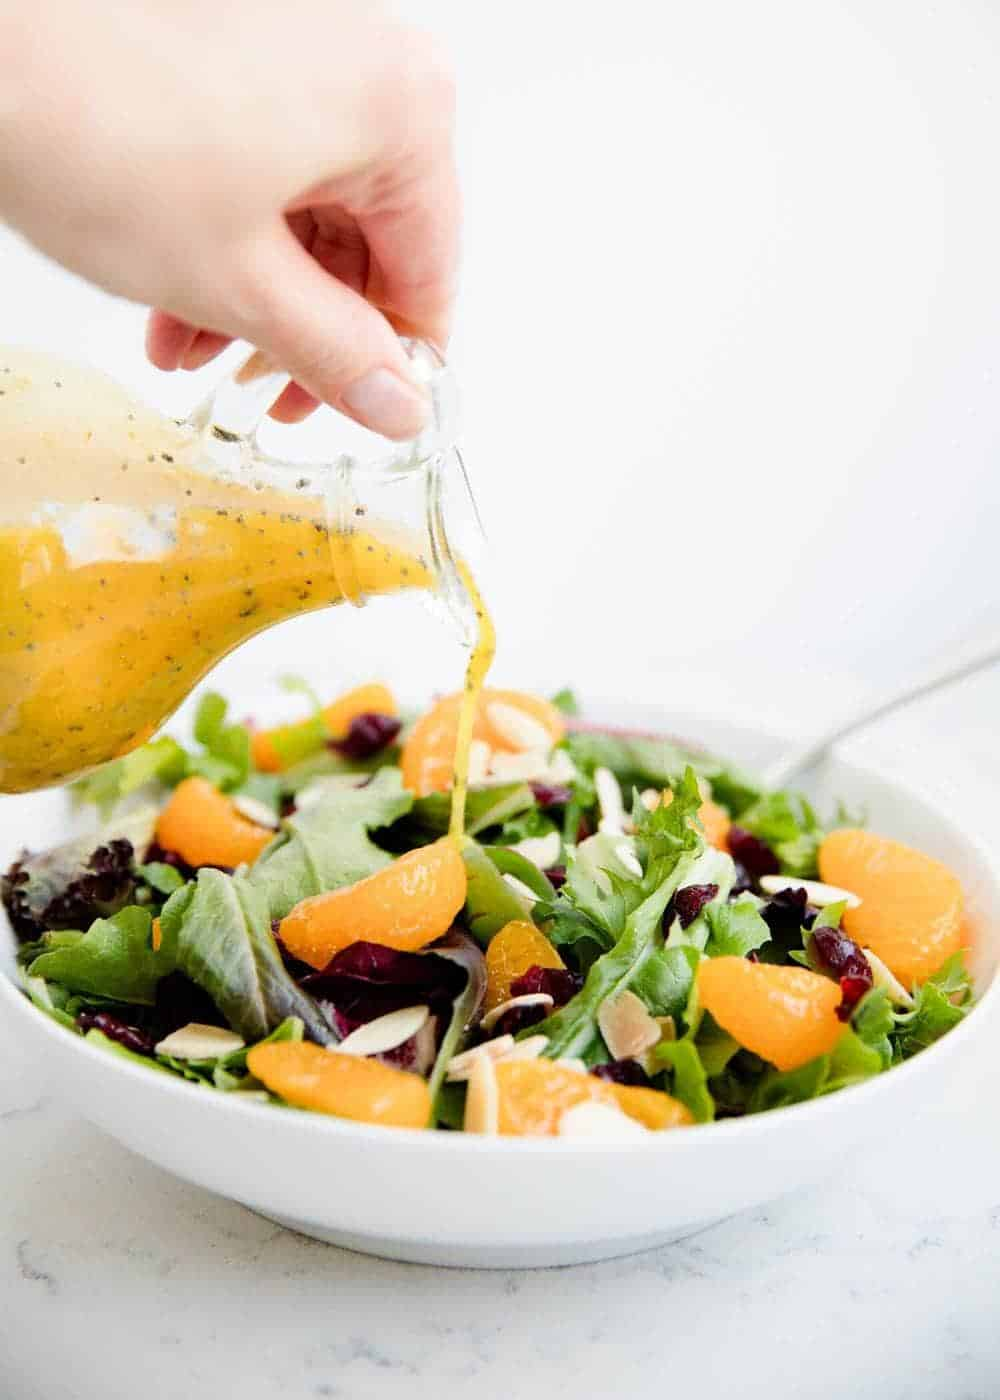 pouring orange vinaigrette over mandarin orange salad